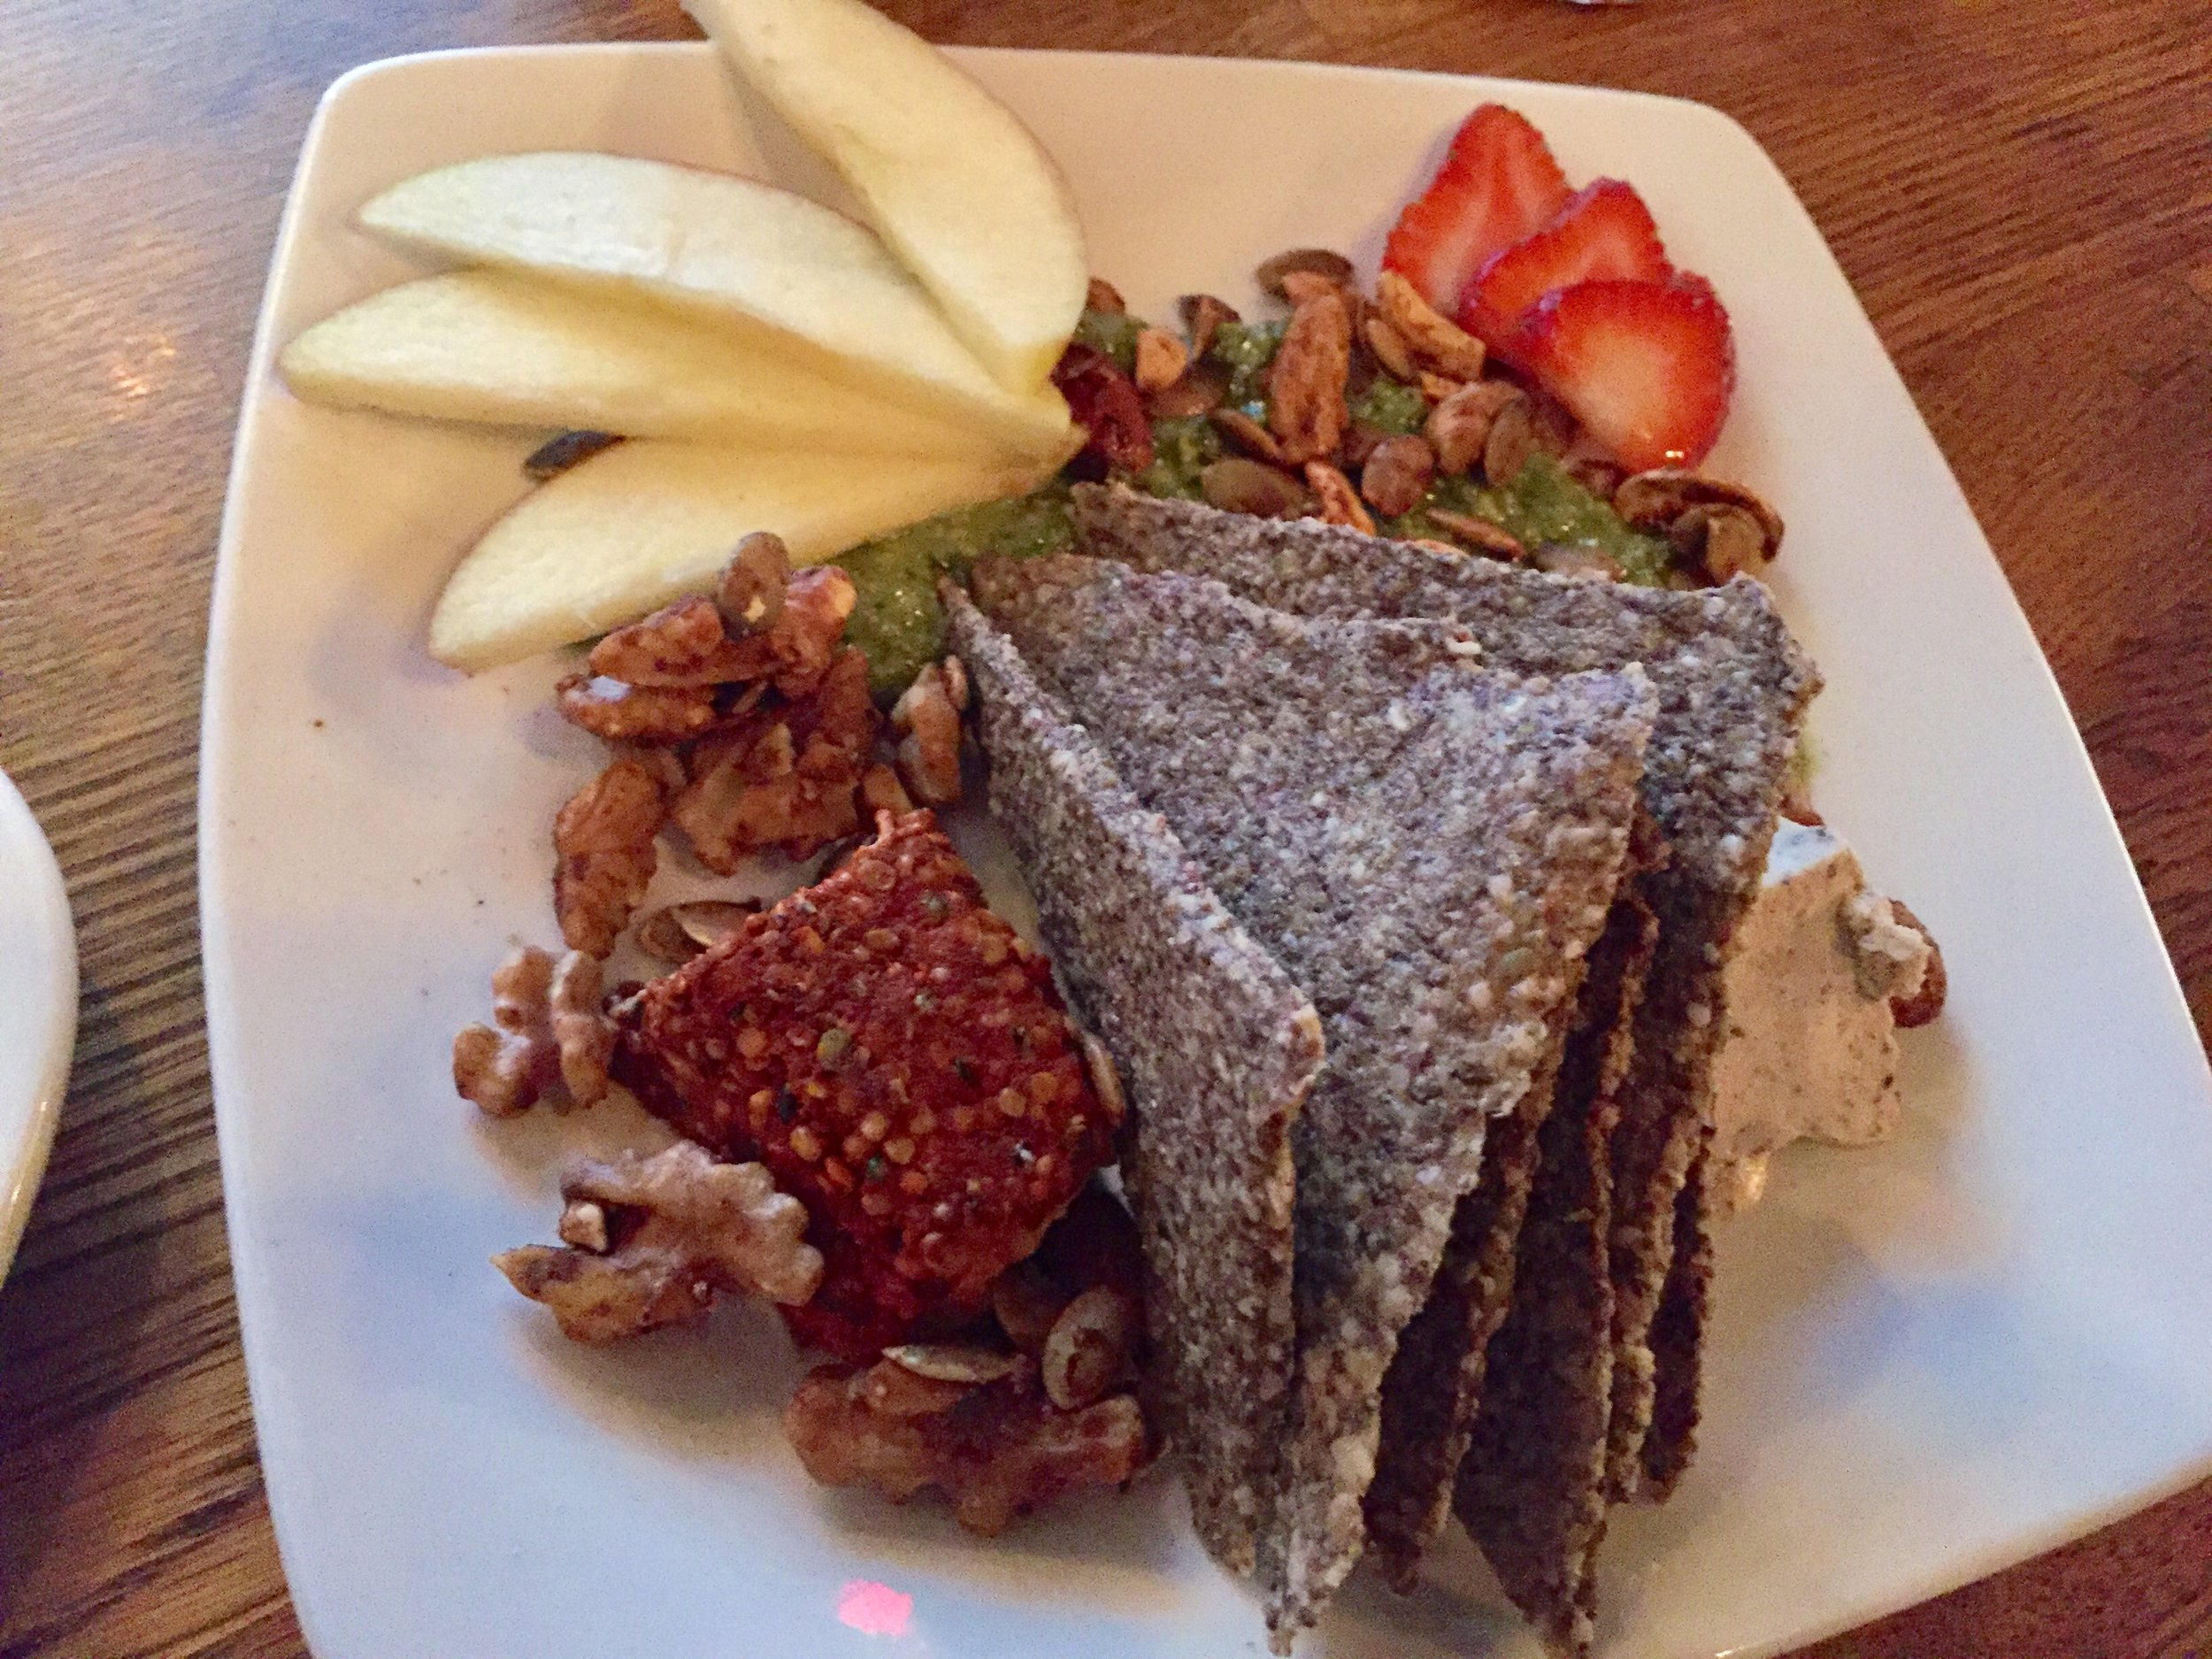 Vegan cheese plate from Zend Conscious Lounge